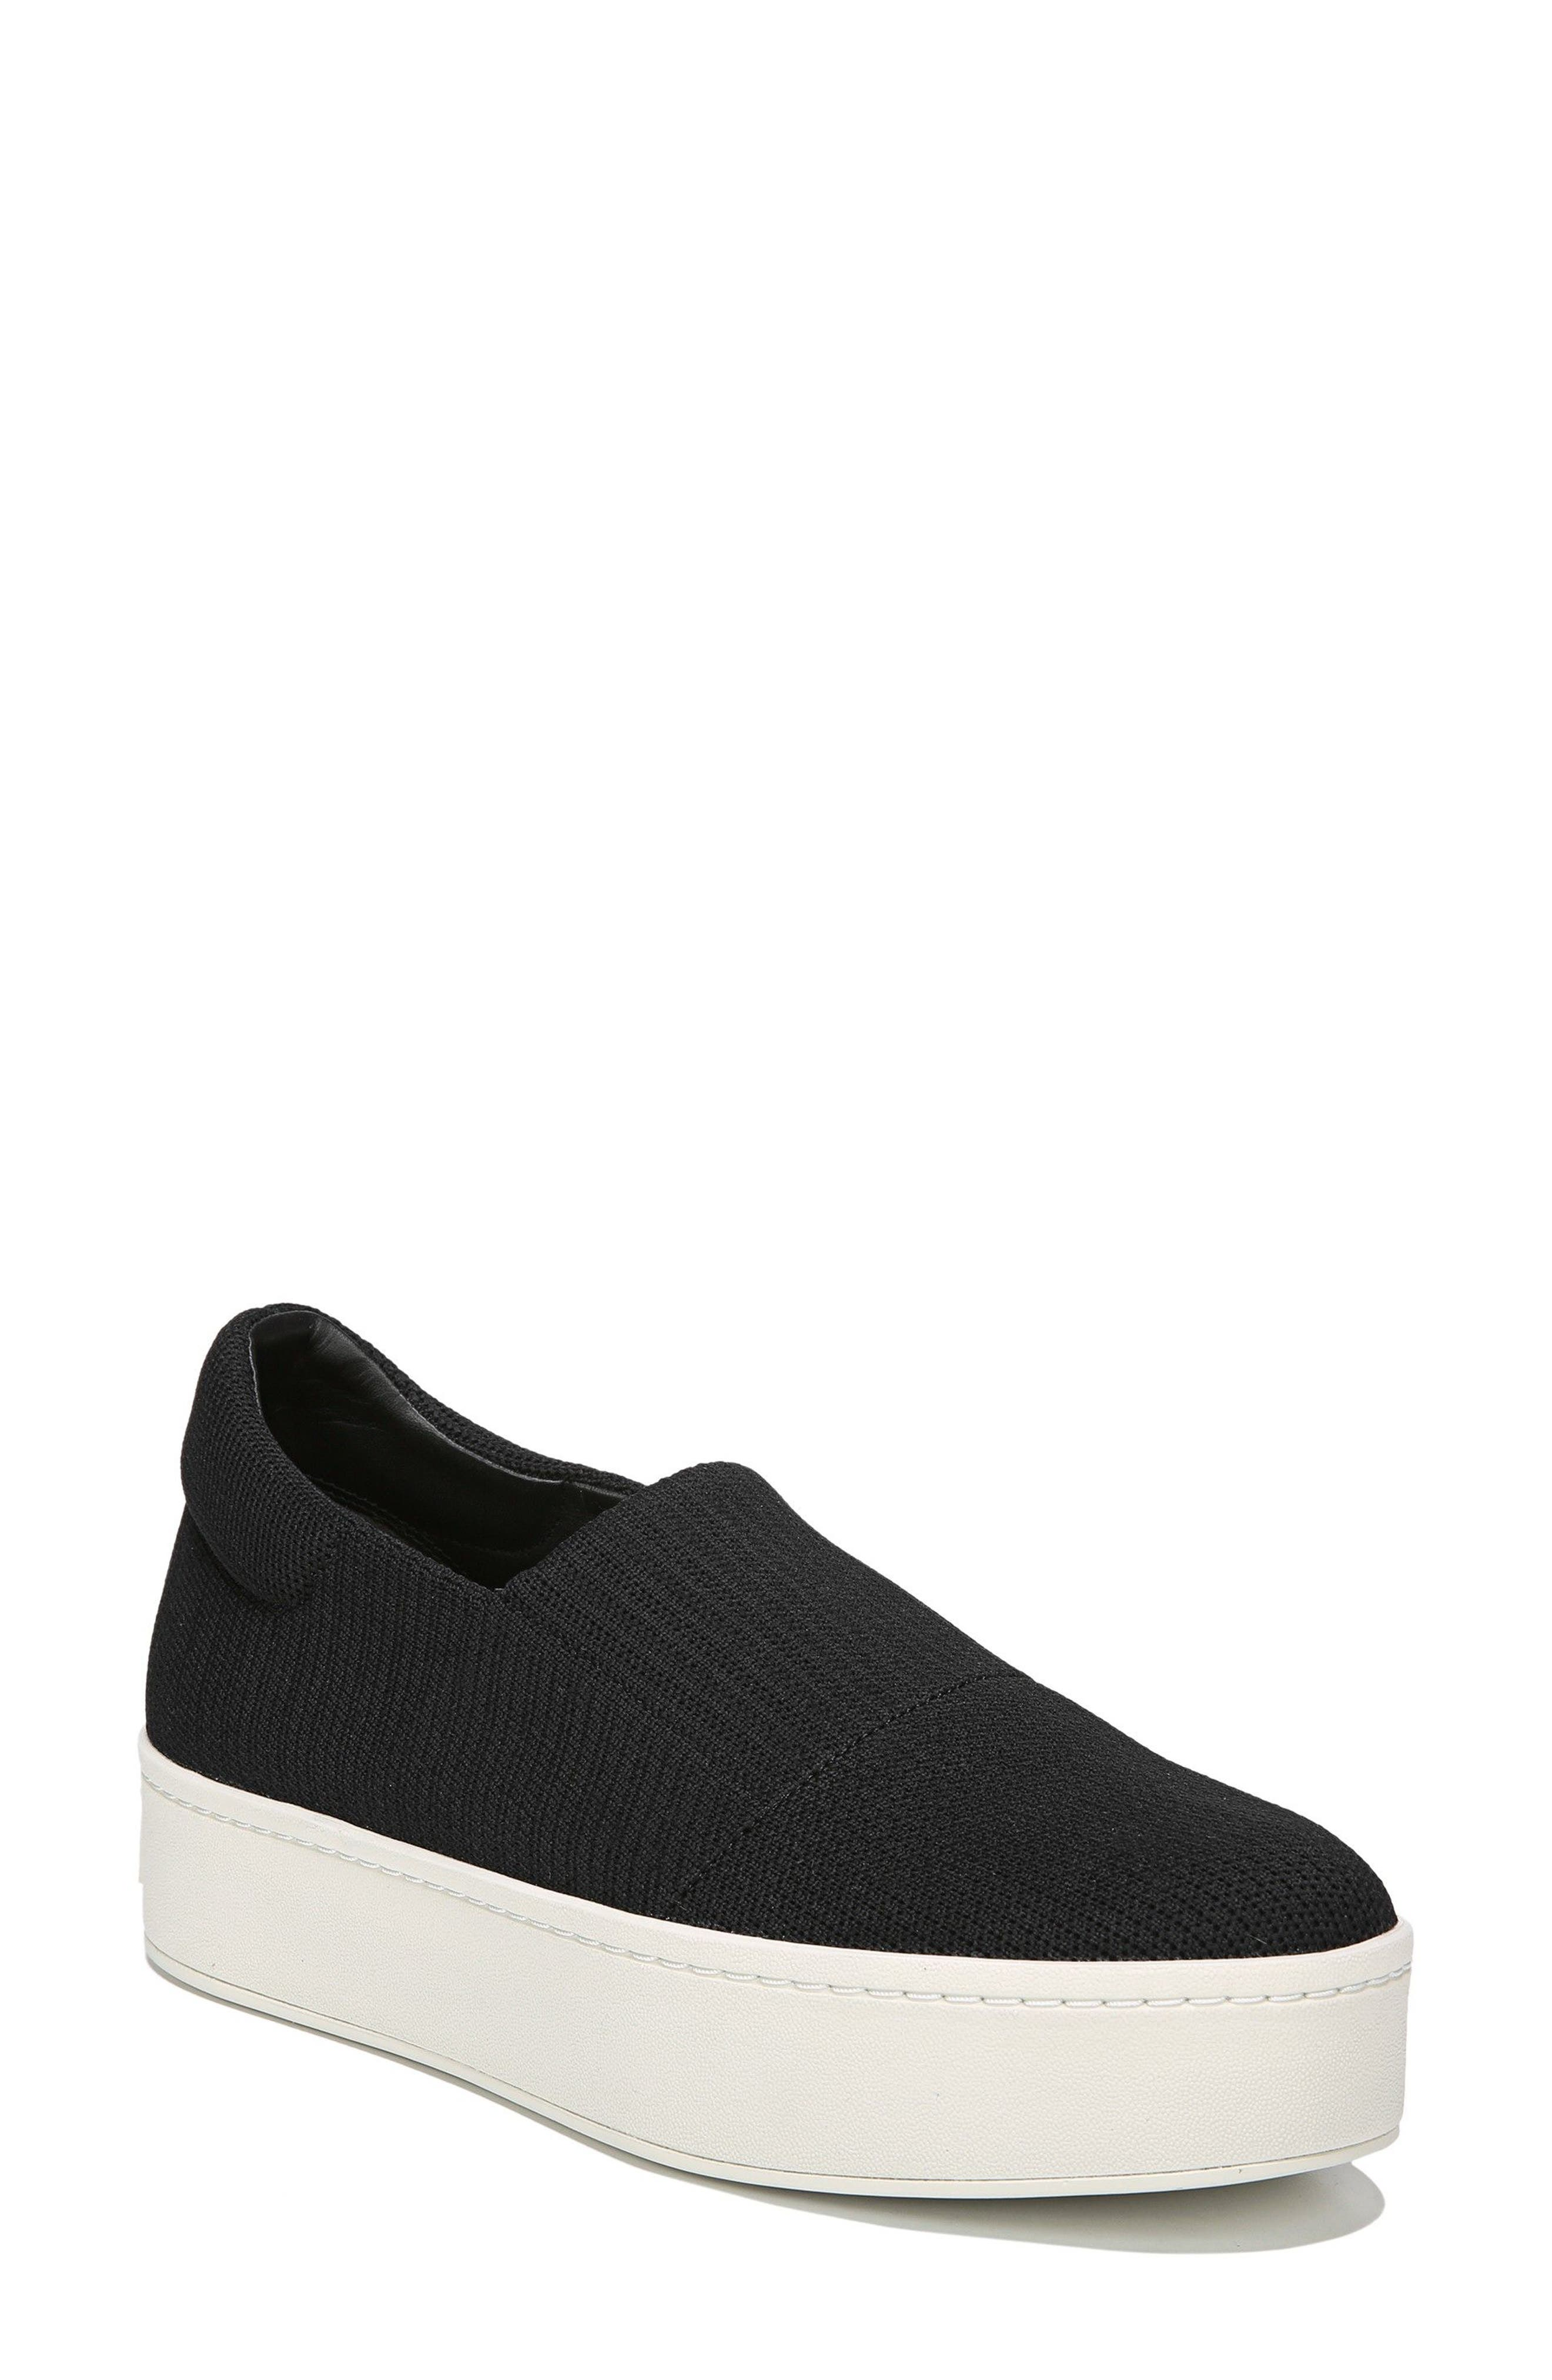 Walsh Slip-On Sneaker,                         Main,                         color, 001